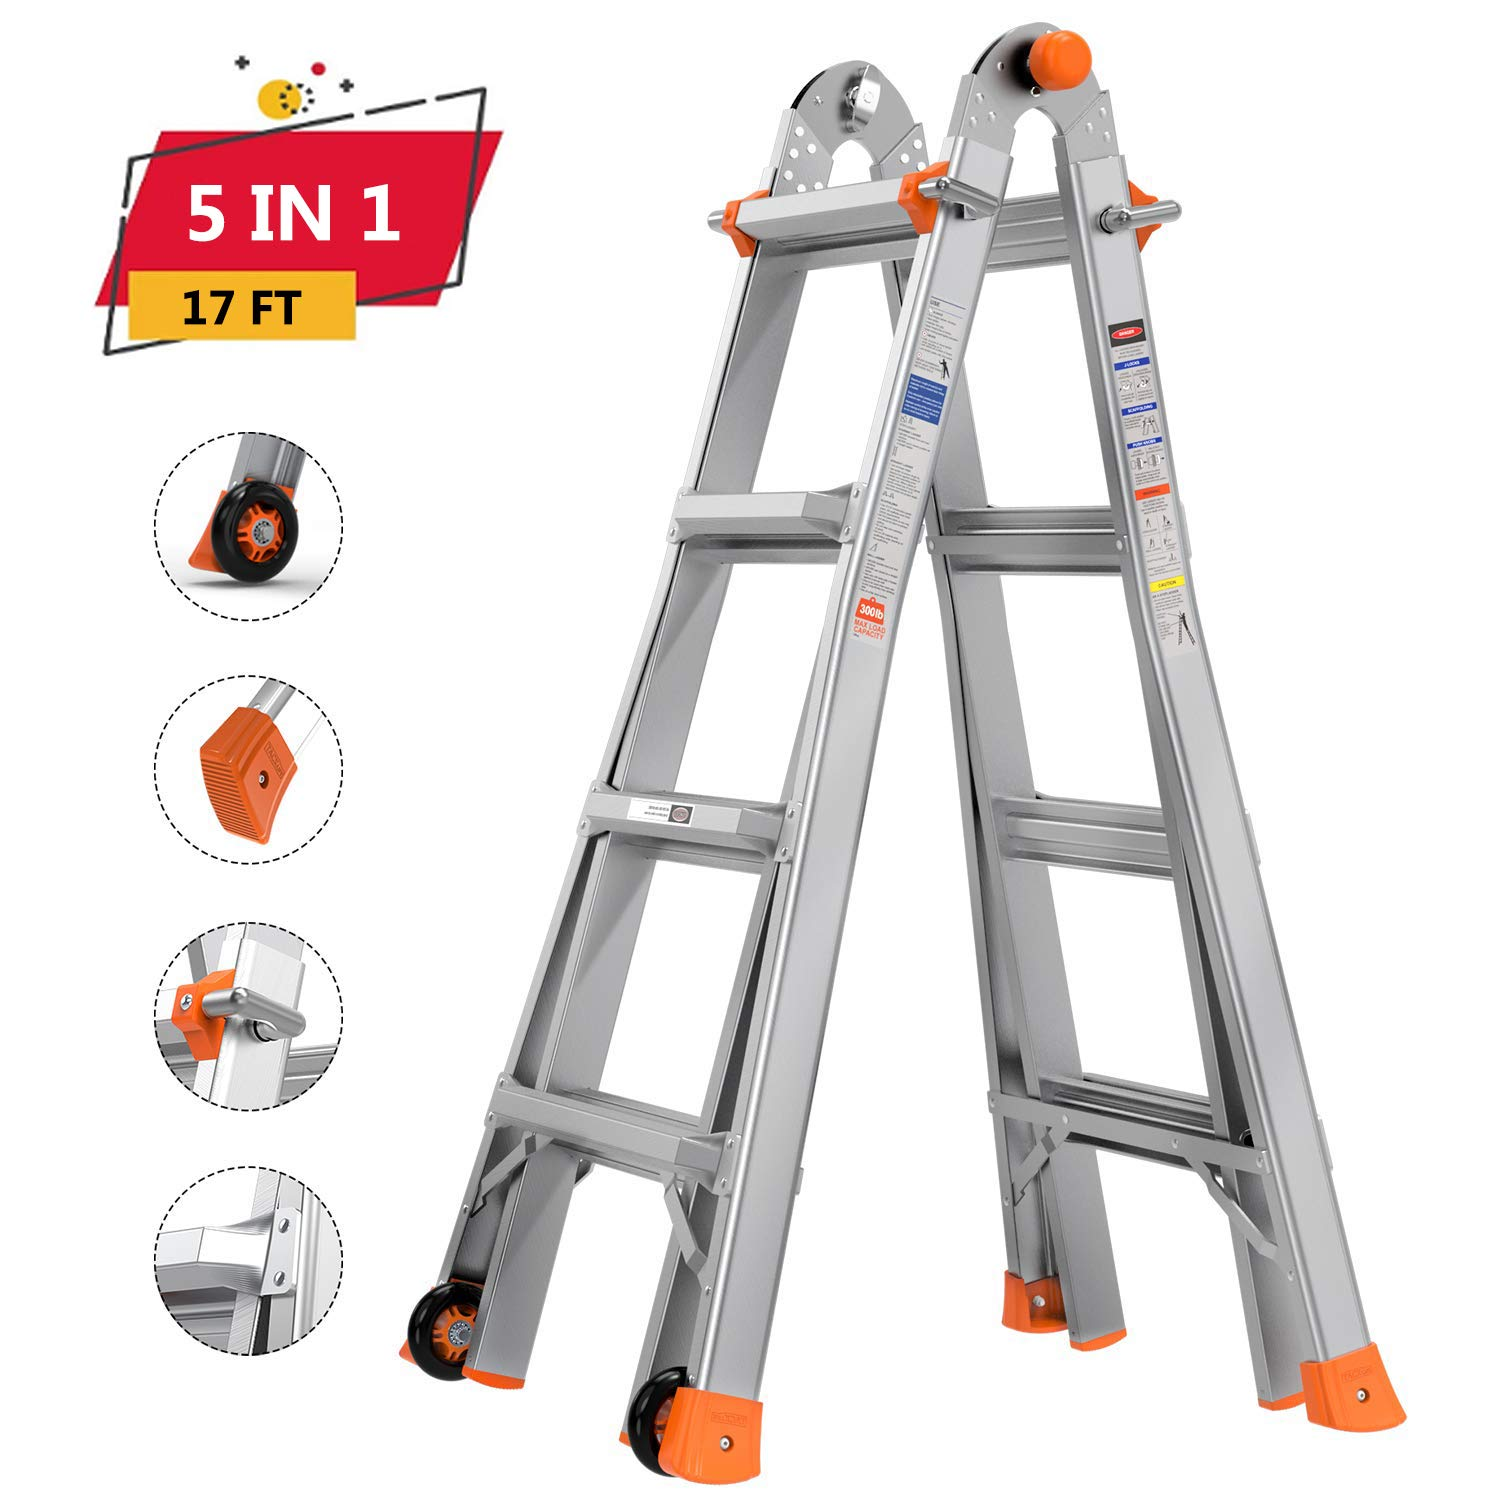 """TACKLIFE Multi-Use Ladder, 17ft, 300lb Max Duty, Rivet Link, Spring Loaded """"J"""" Lock Unique Design,5 Height-Mode, High Anti-Skid, Aluminum Alloy Material HXLD02A"""